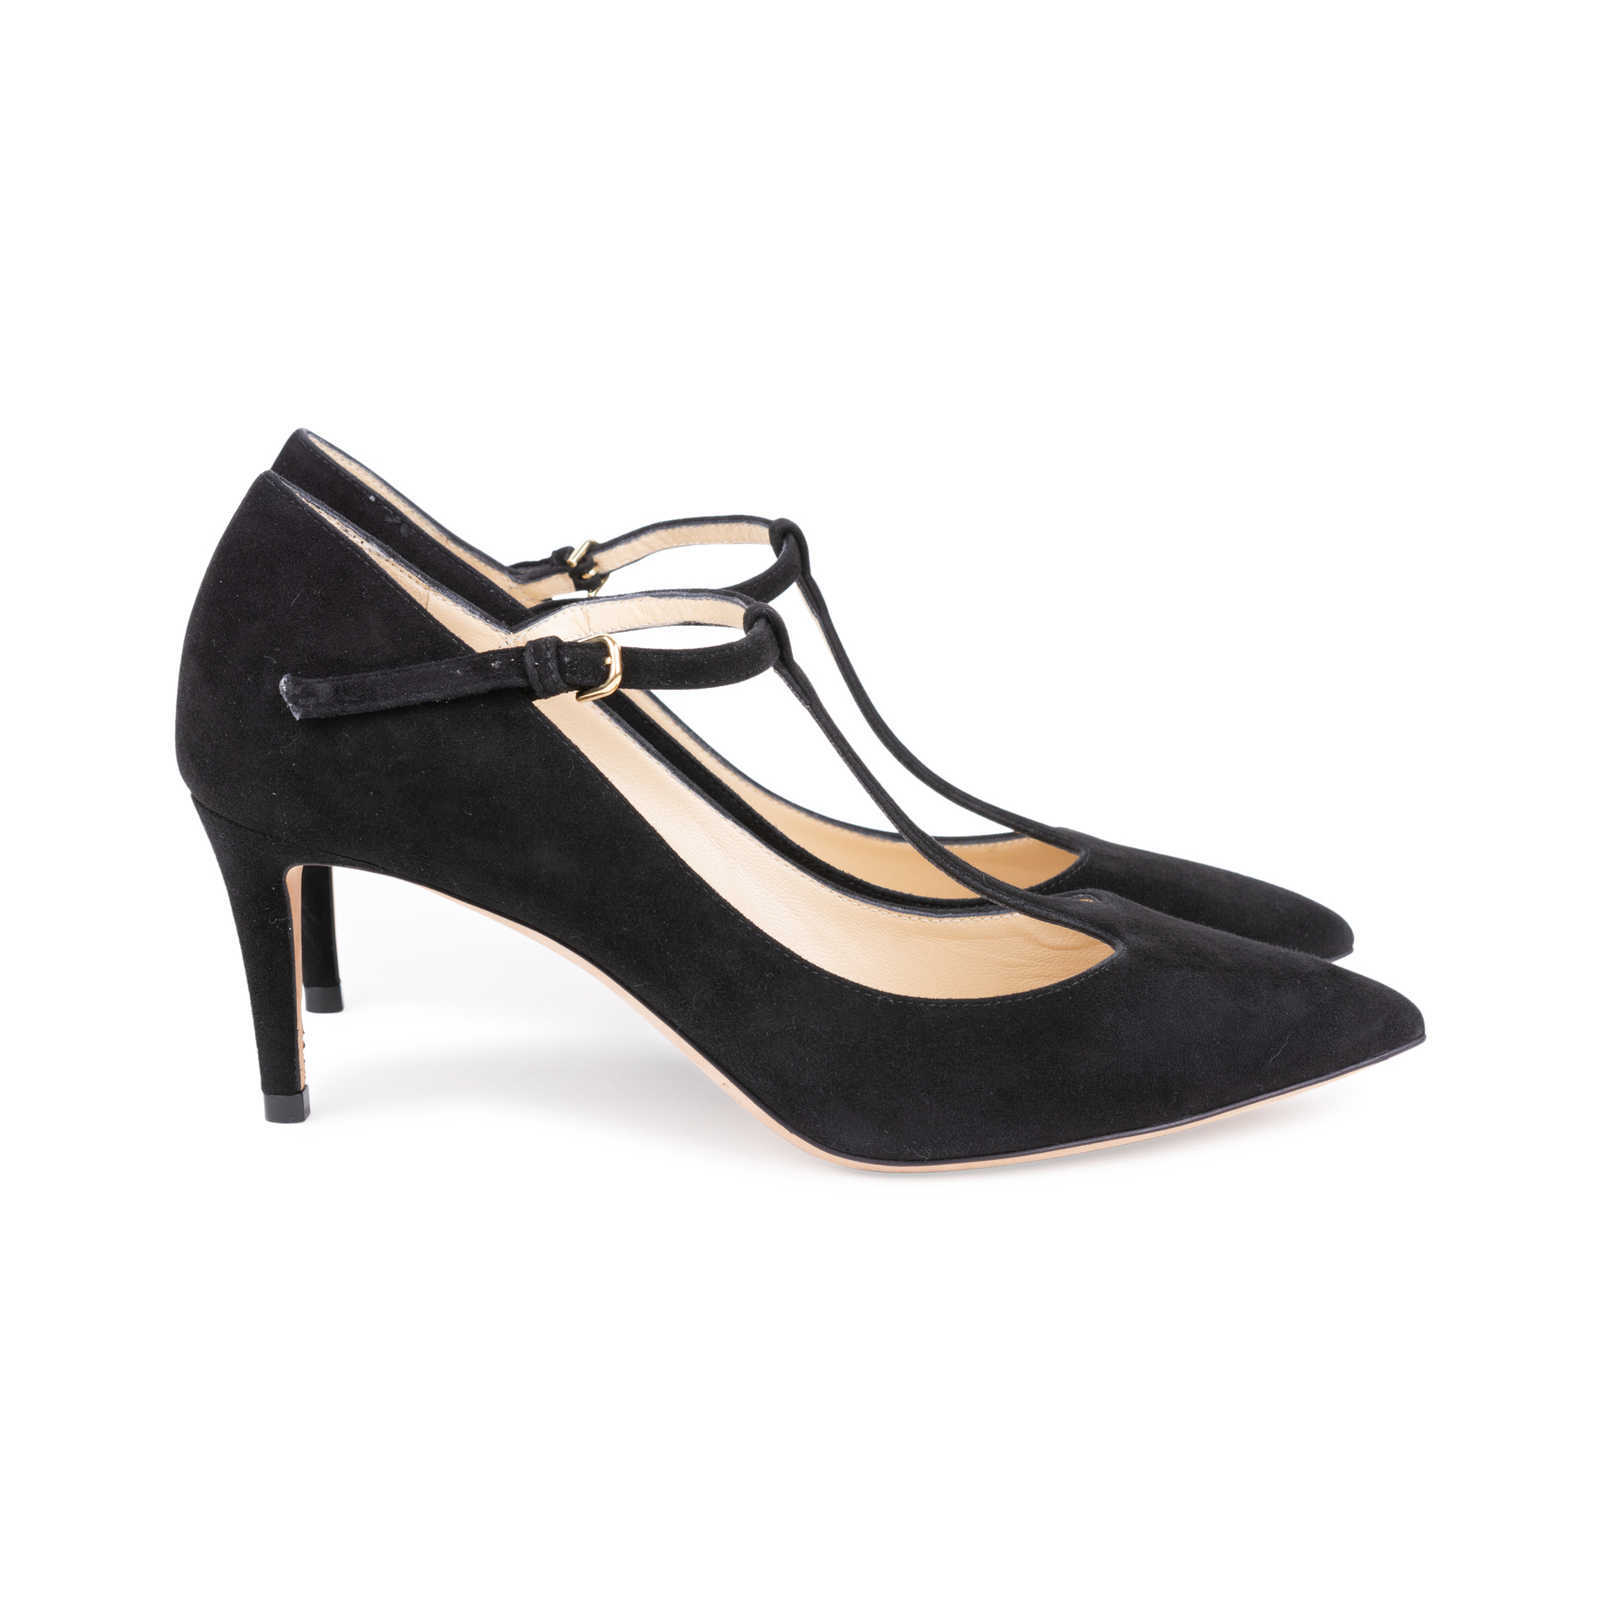 db99dc2fa35 ... Authentic Second Hand Jimmy Choo Daria Suede Pumps (PSS-145-00272) ...